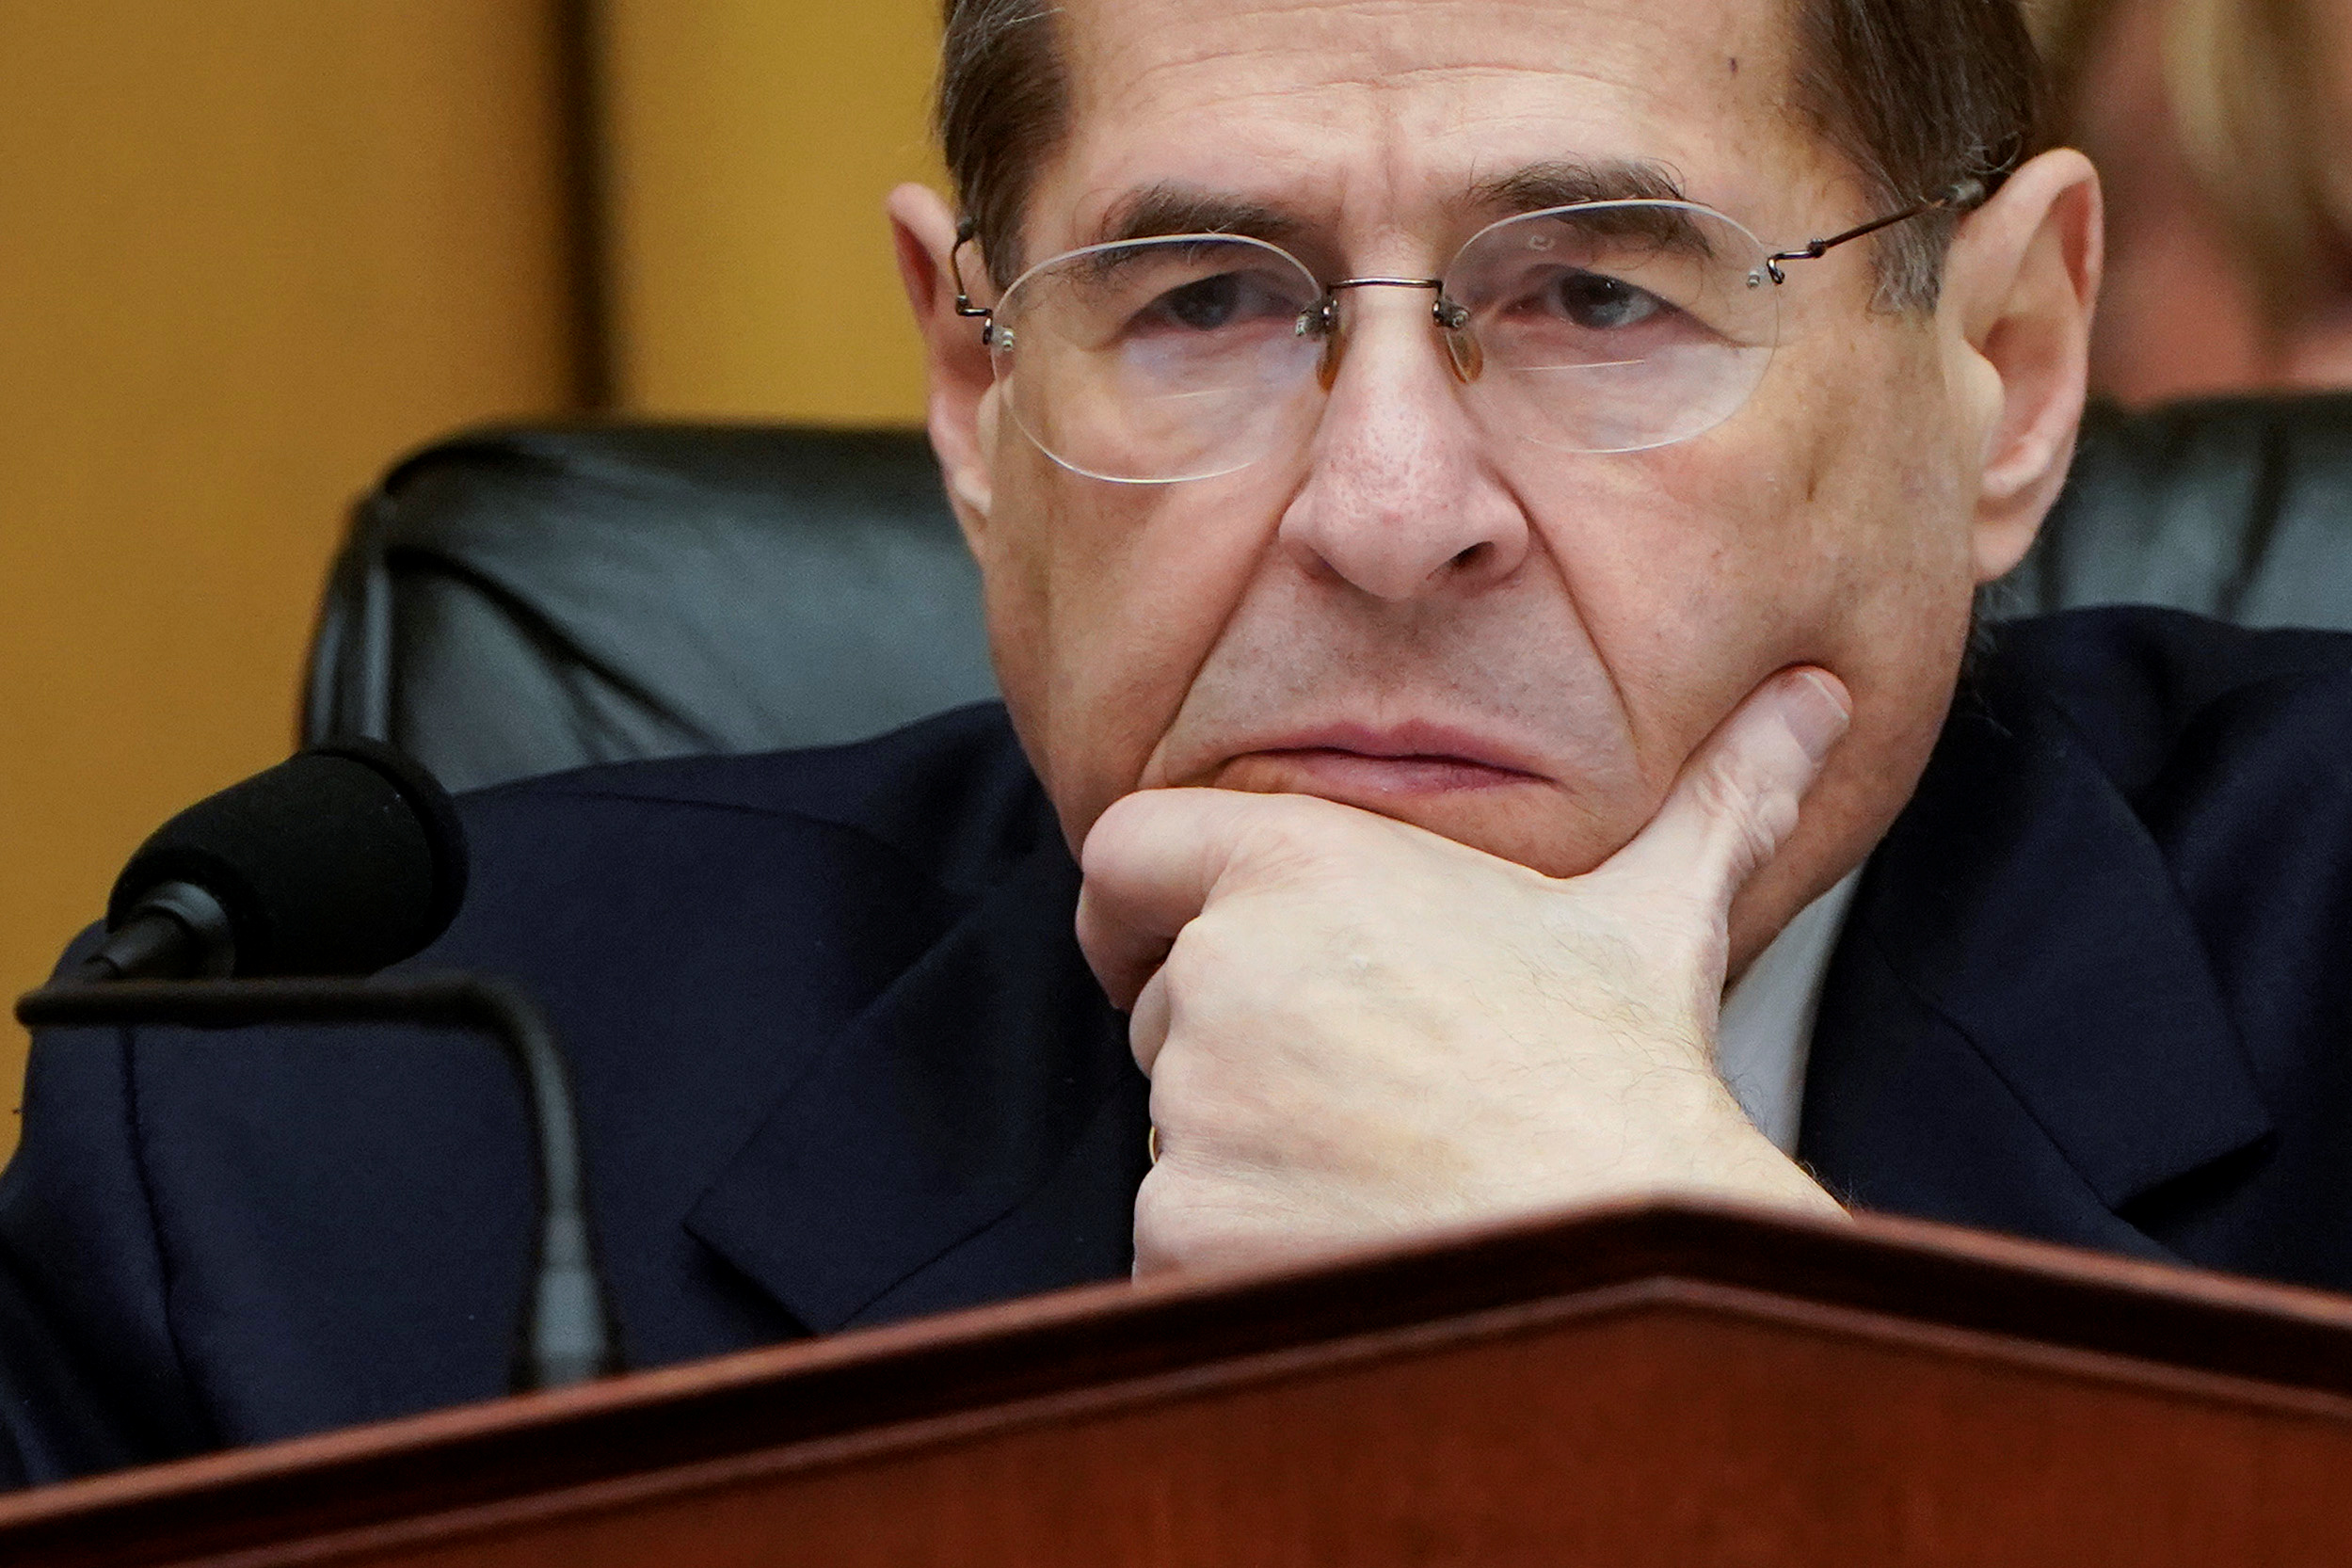 Chairman of the House Judiciary Committee Jerrold Nadler (D-NY) listens to testimony during a mark up hearing on Capitol Hill in Washington, U.S., March 26, 2019. REUTERS/Joshua Roberts